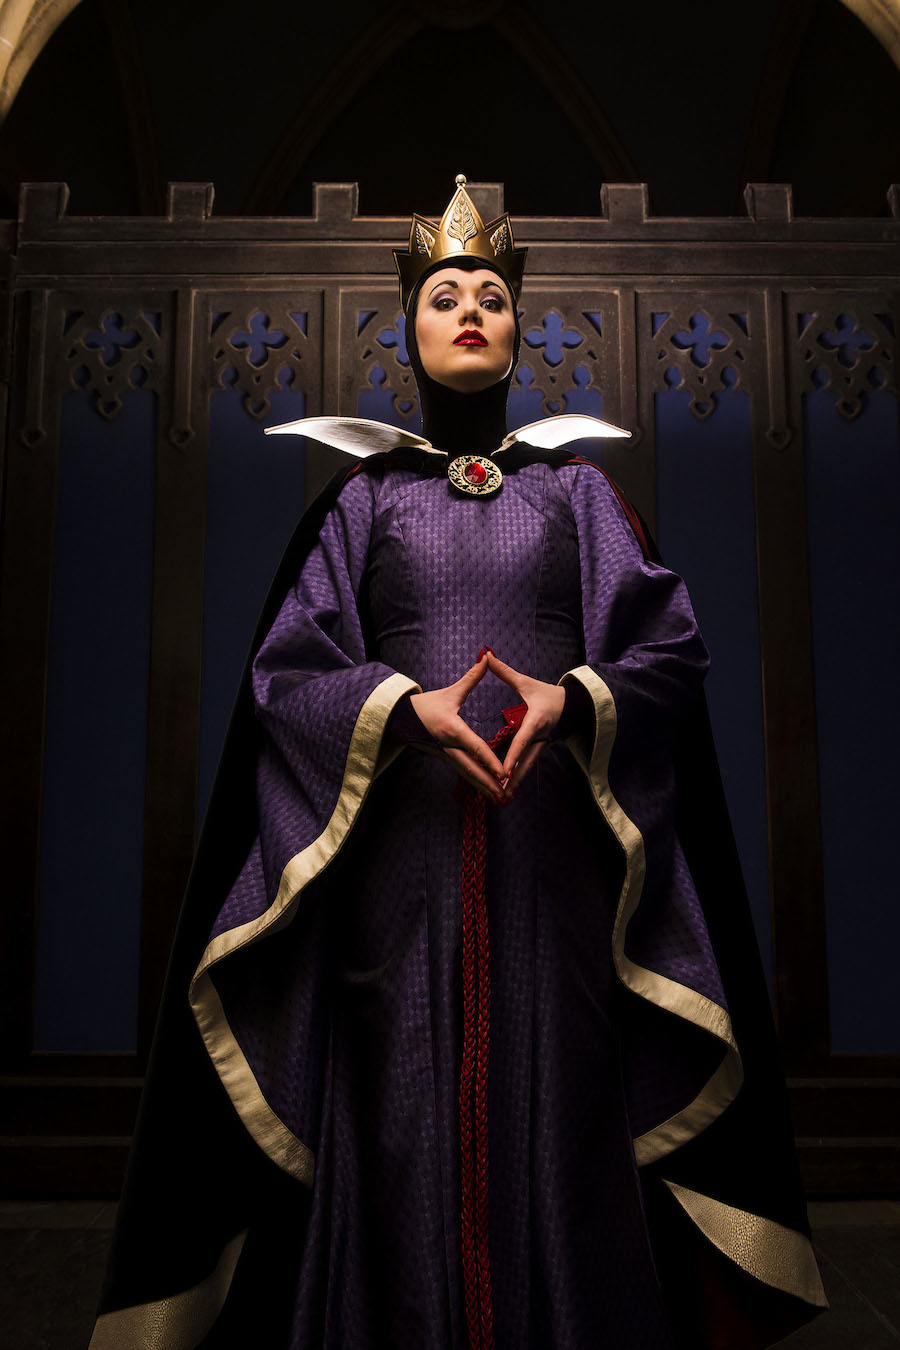 Villain S Gallery The Wicked Queen From Snow White